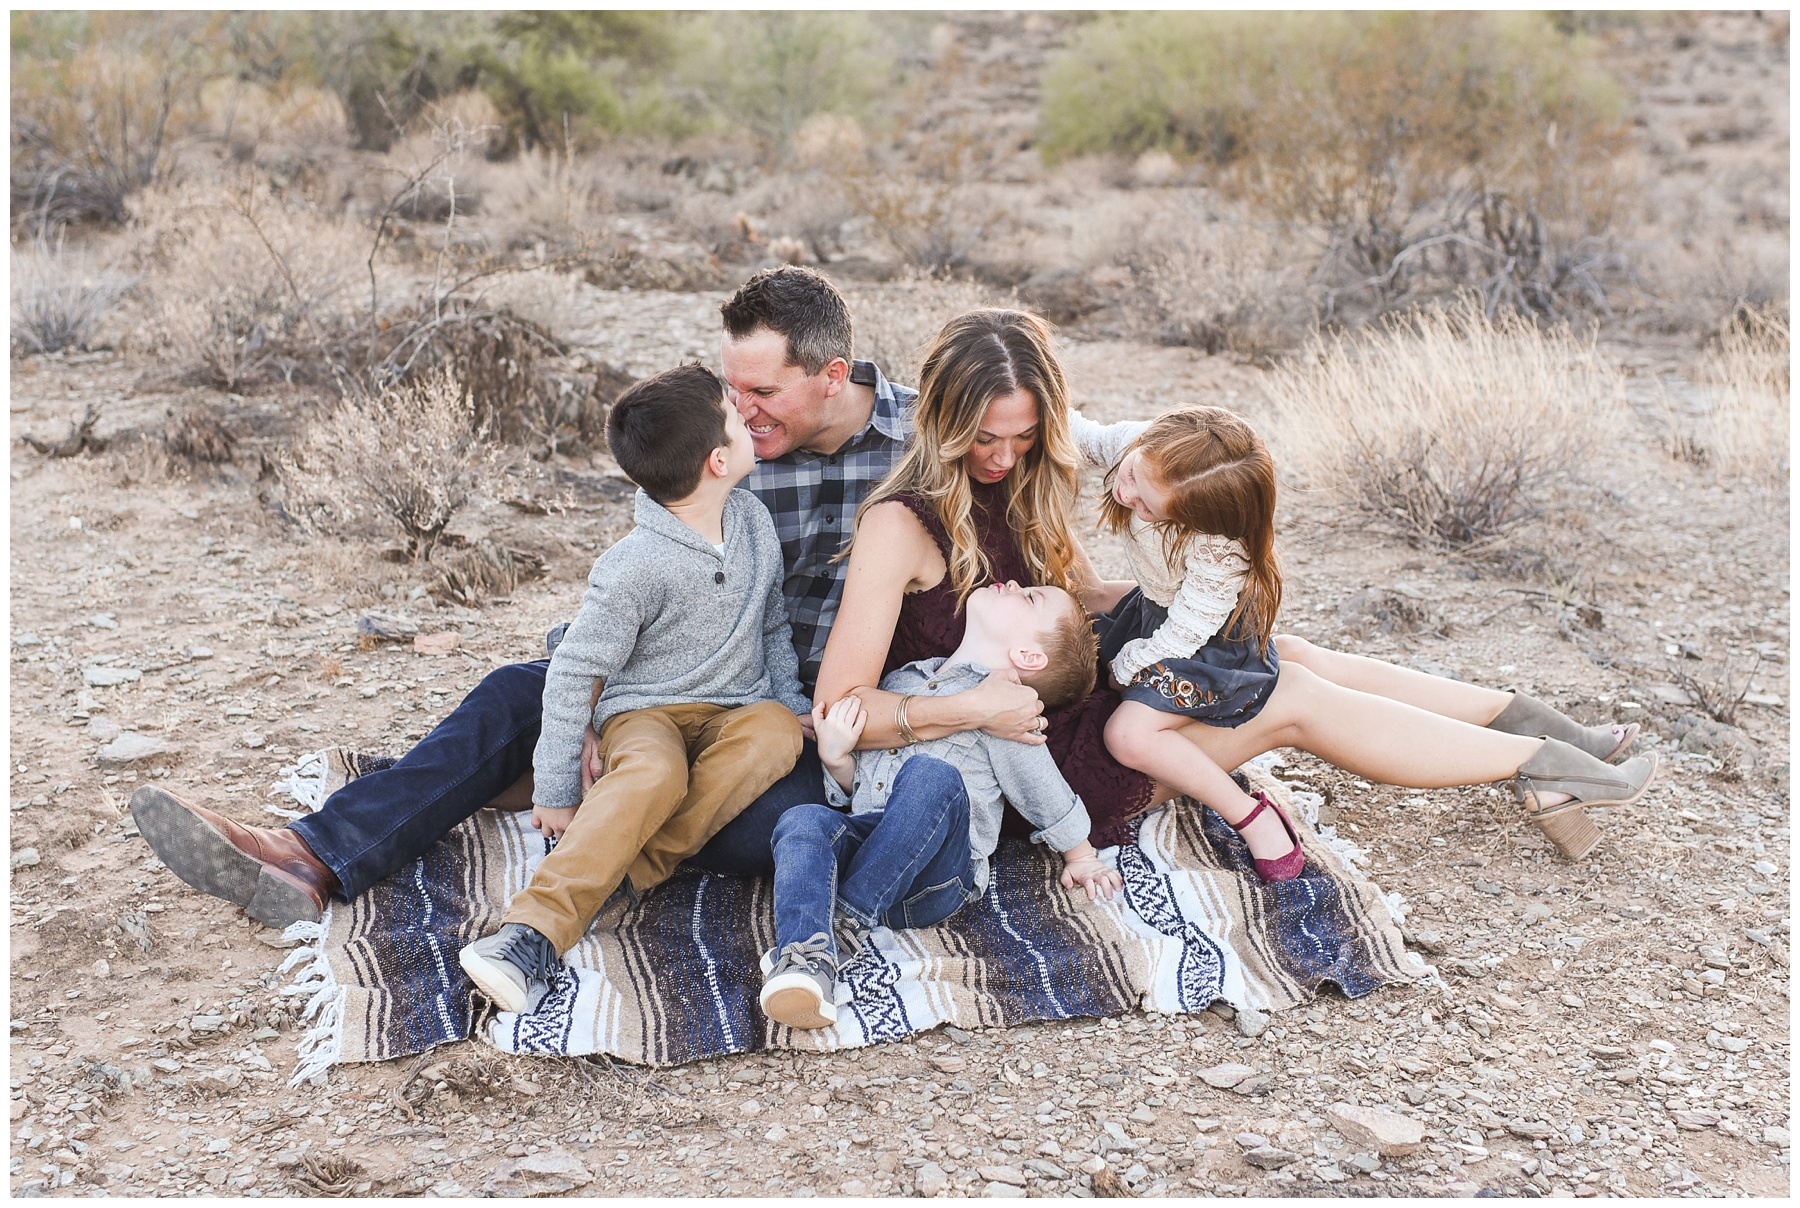 Desert lifestyle family shot | Phoenix Family Photography